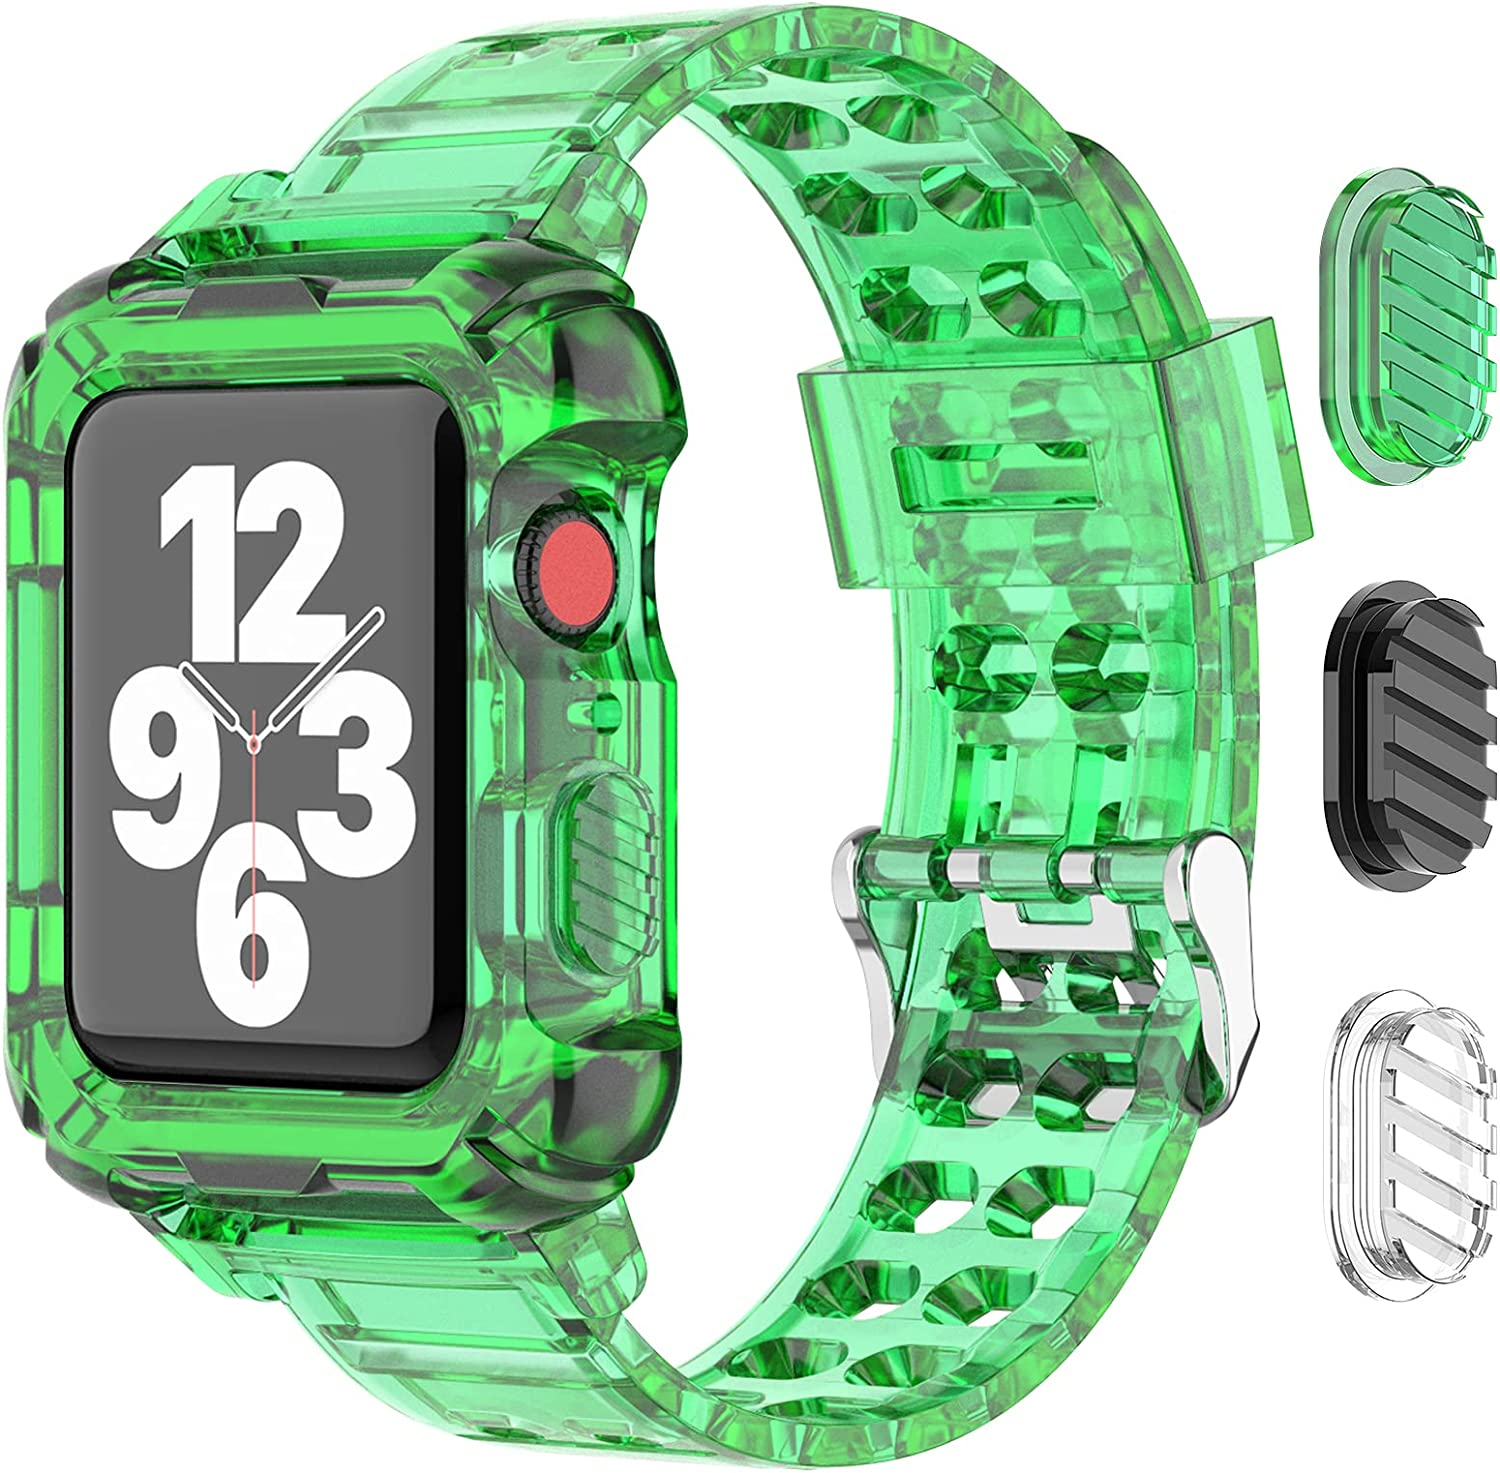 SKYLET Compatible with Apple Watch Bands 44mm 40mm 42mm 38mm Series 6 5 4 SE 3 2 1 for Men Women with Rugged Bumper Protective Case, Clear Transparent Soft TPU Sport Replacement Crystal iWatch Wristbands